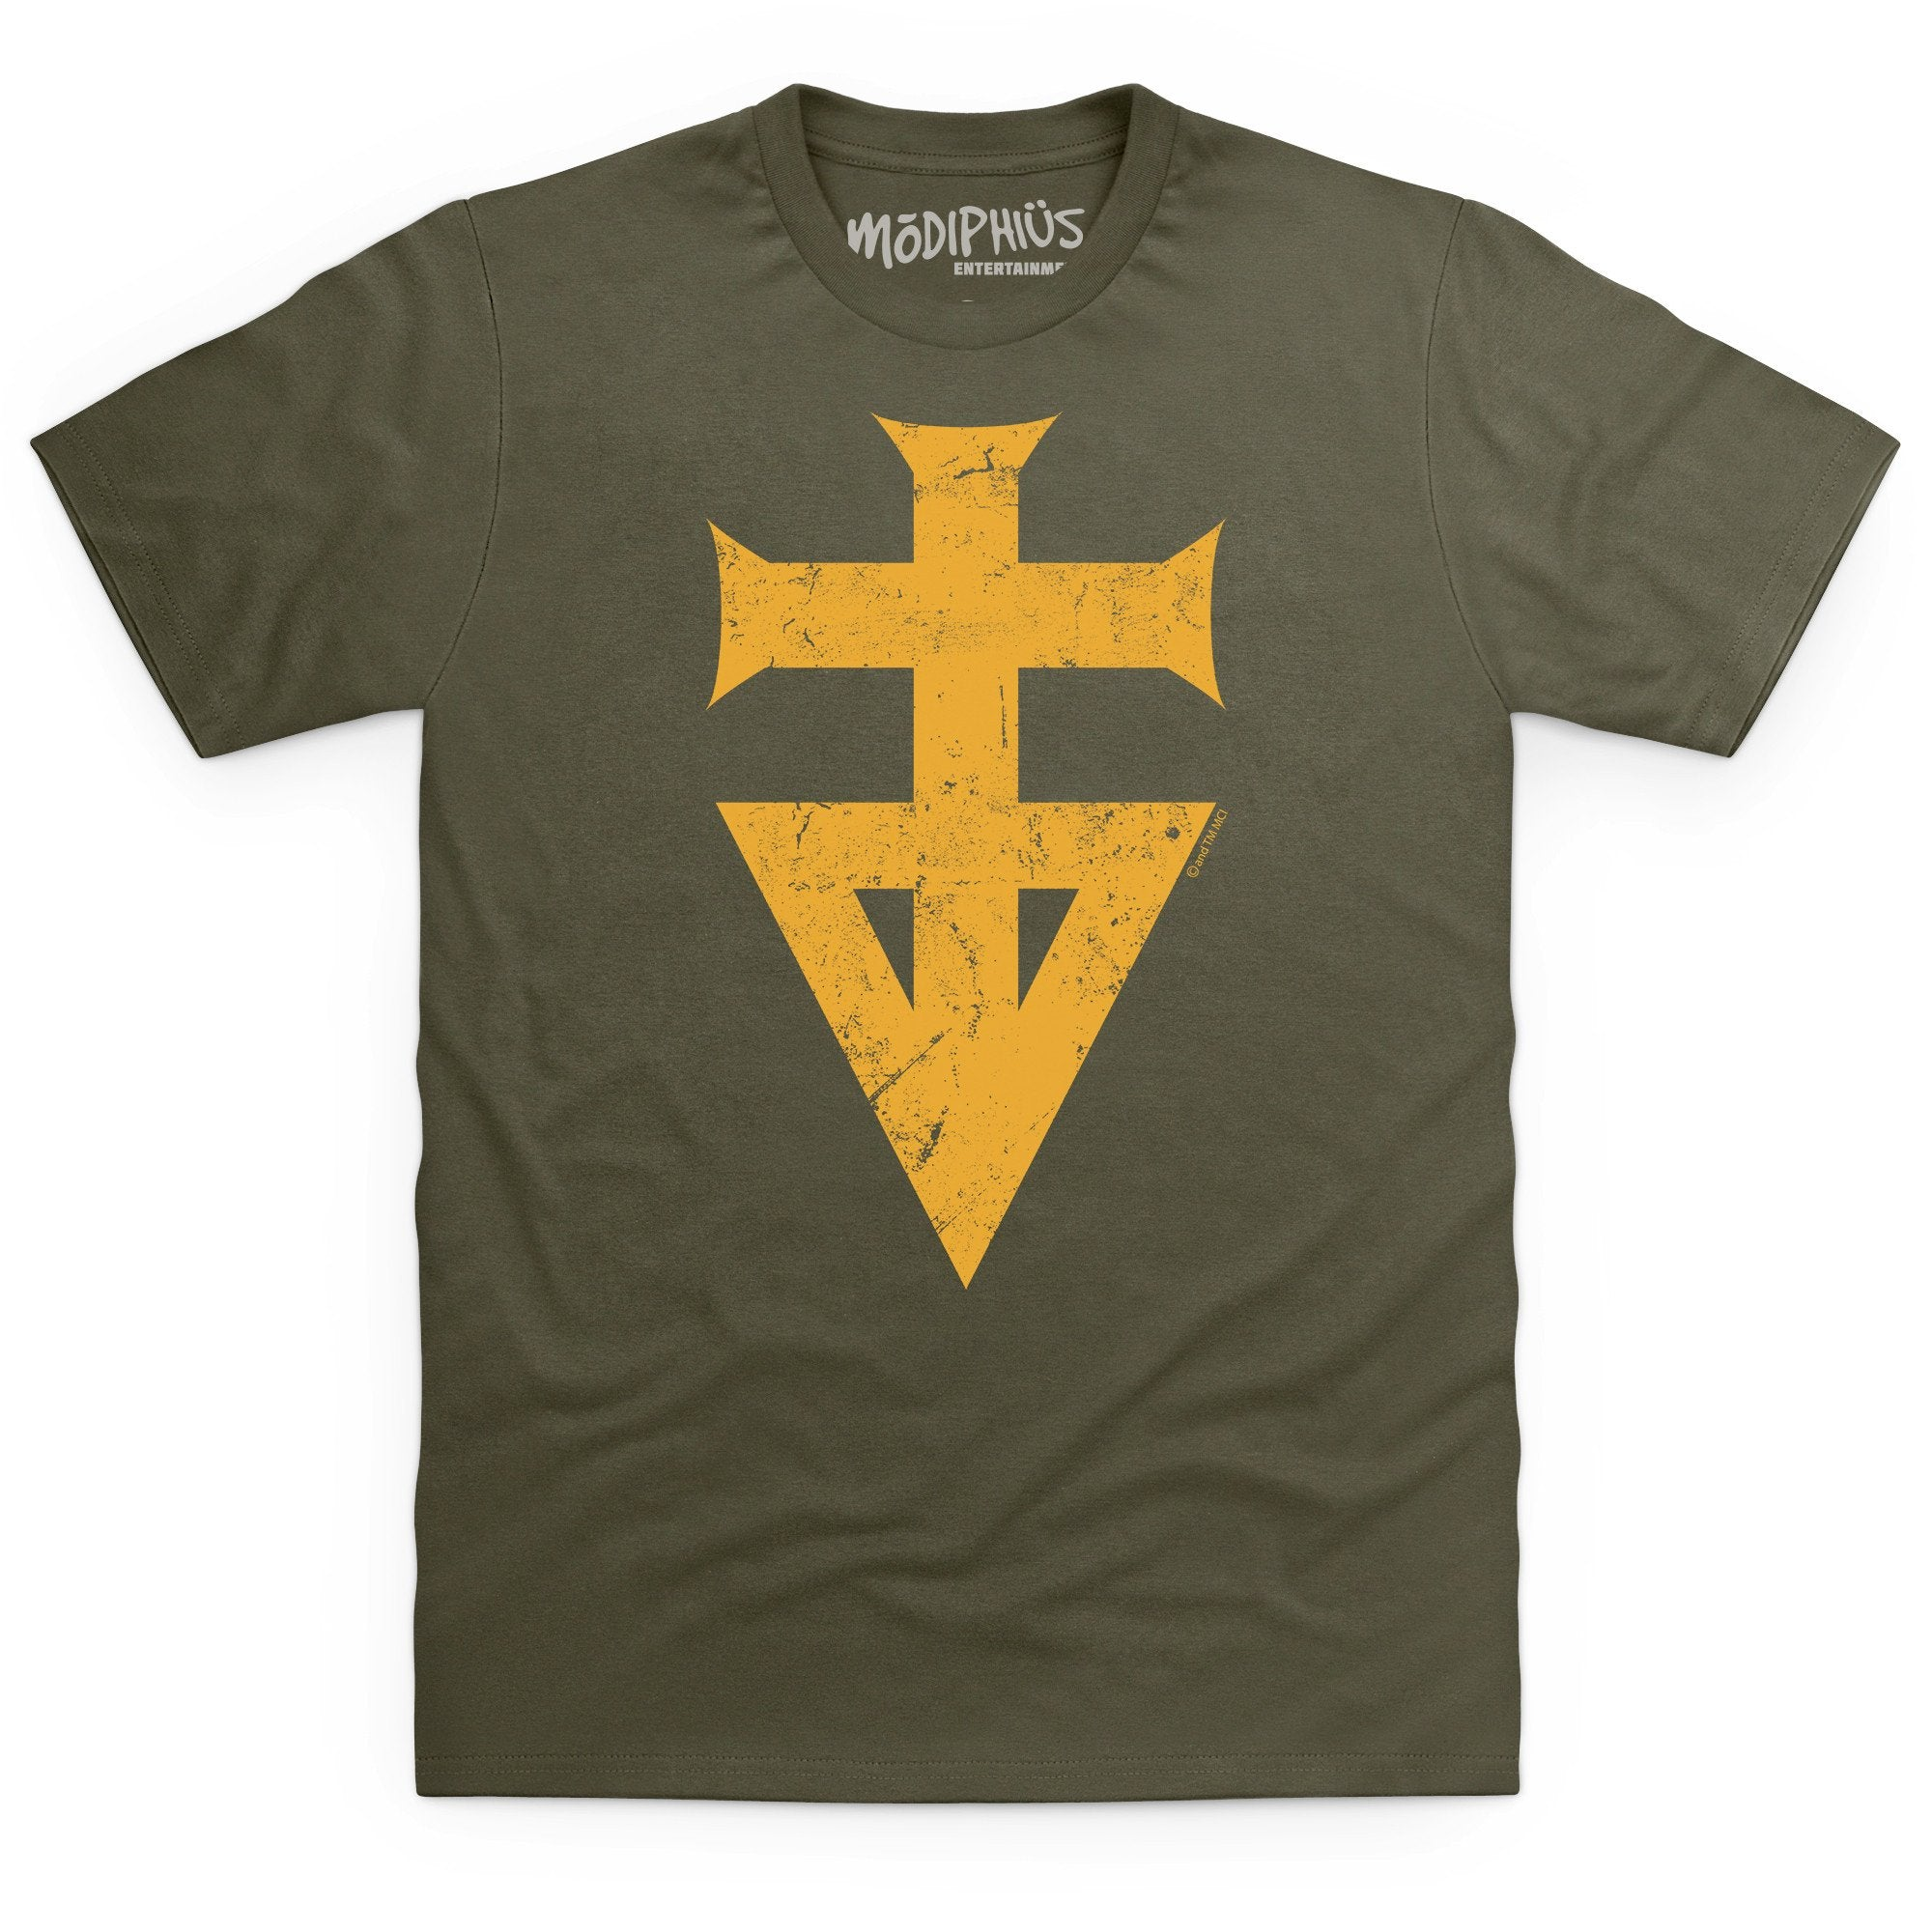 Mutant Chronicles: Brotherhood distressed t-shirt